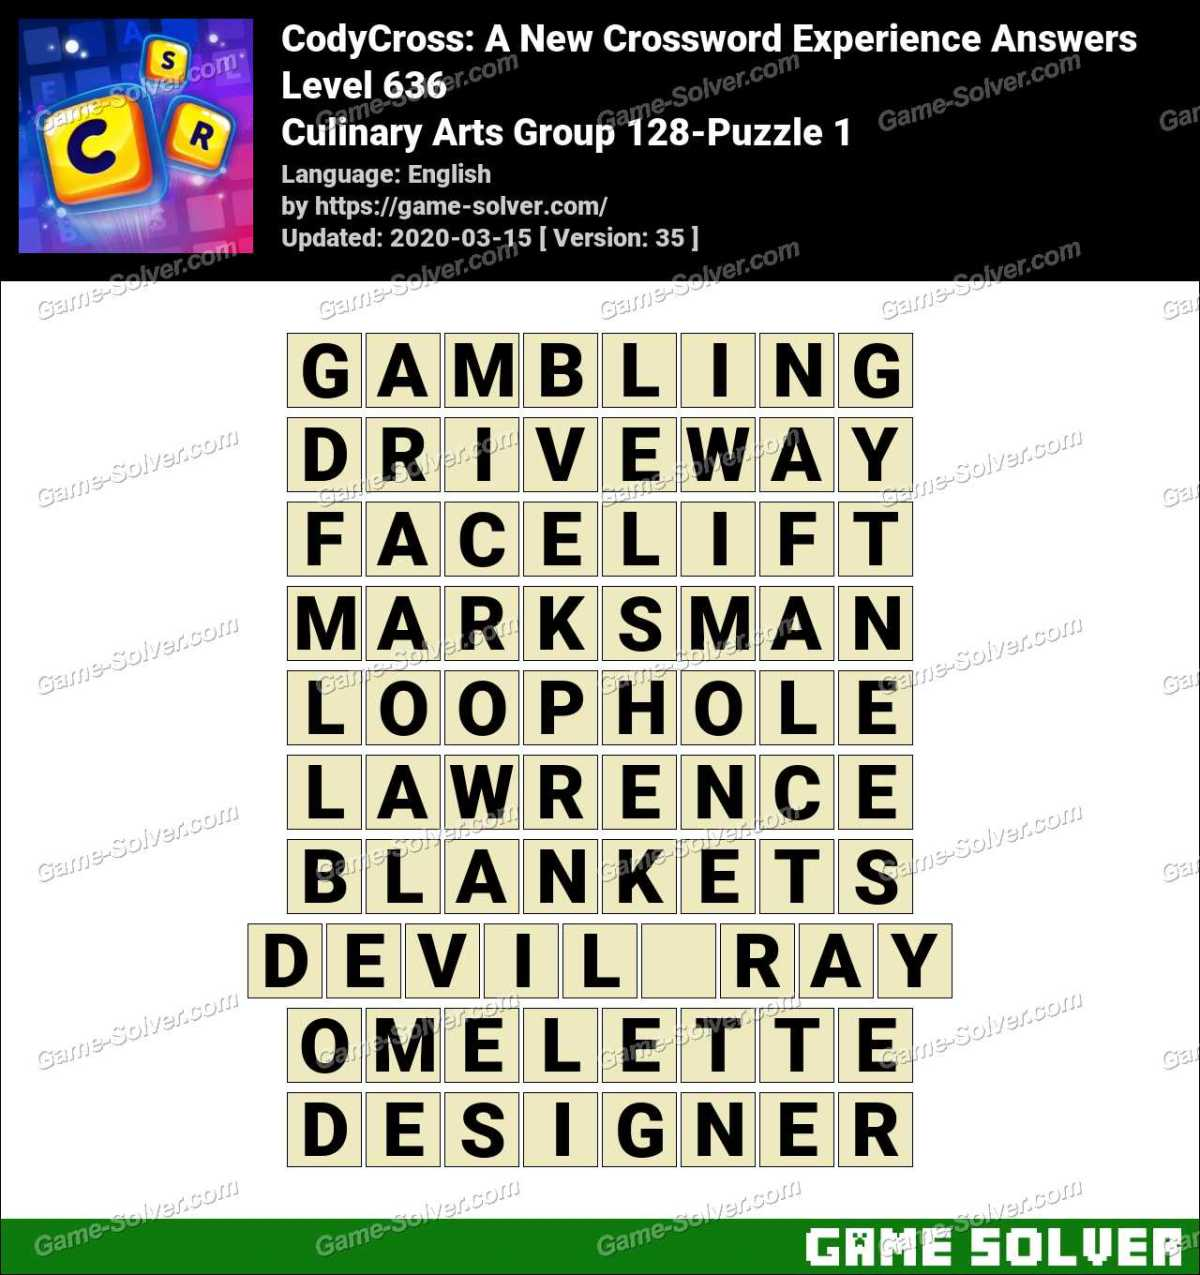 CodyCross Culinary Arts Group 128-Puzzle 1 Answers